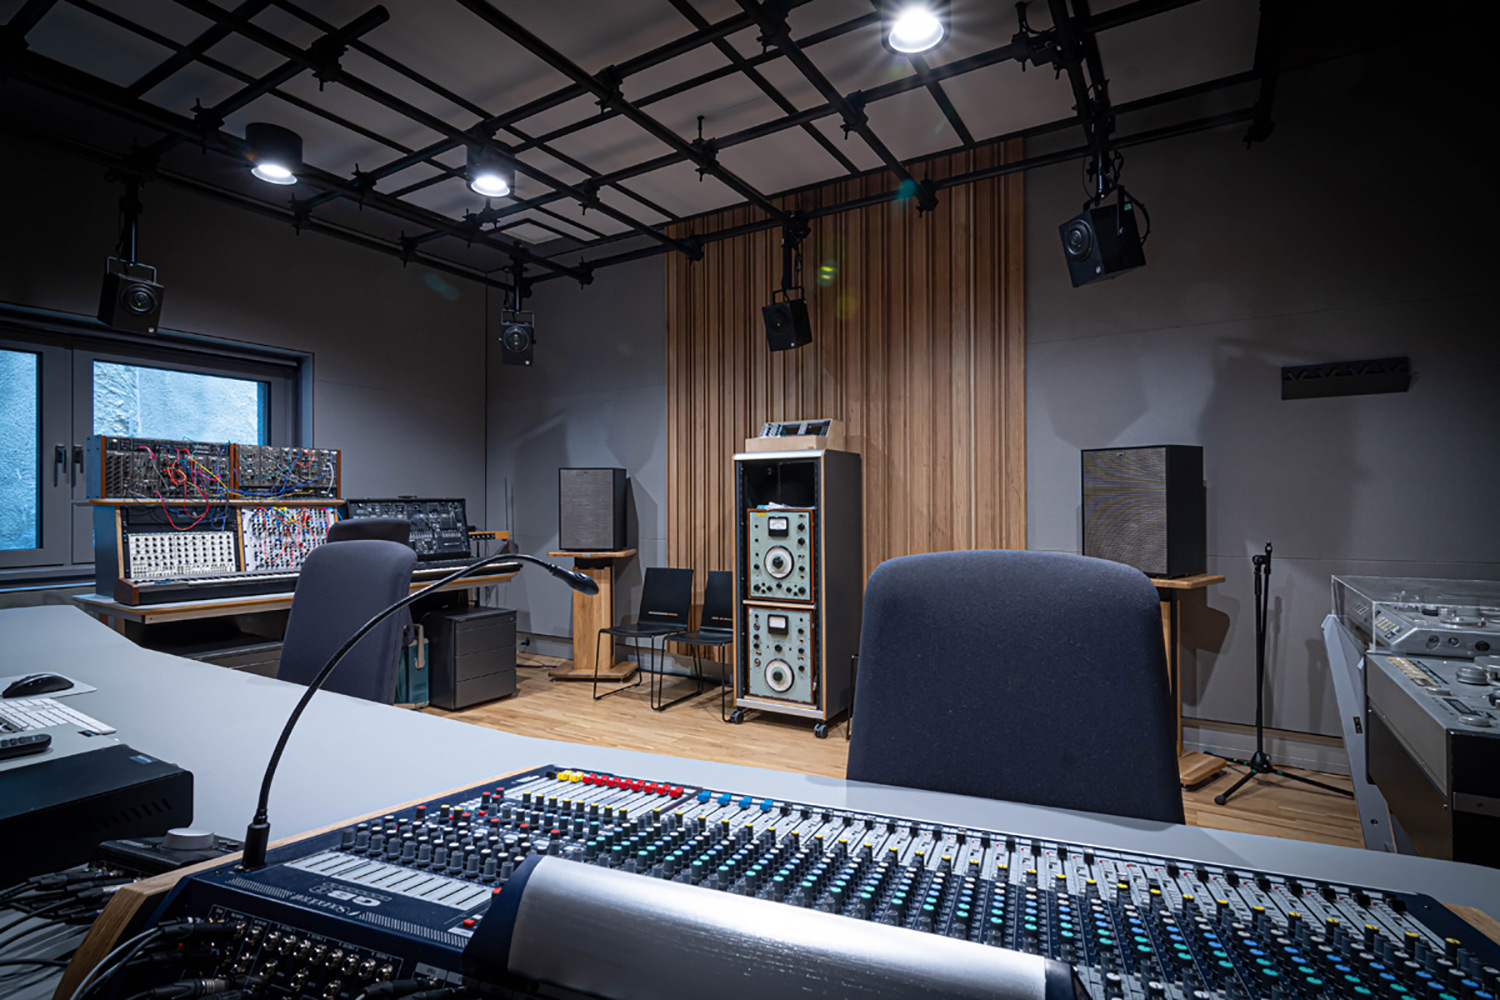 The University of Music and Performing Arts of Vienna new Future Art Lab designed by WSDG. Analogue Gear.